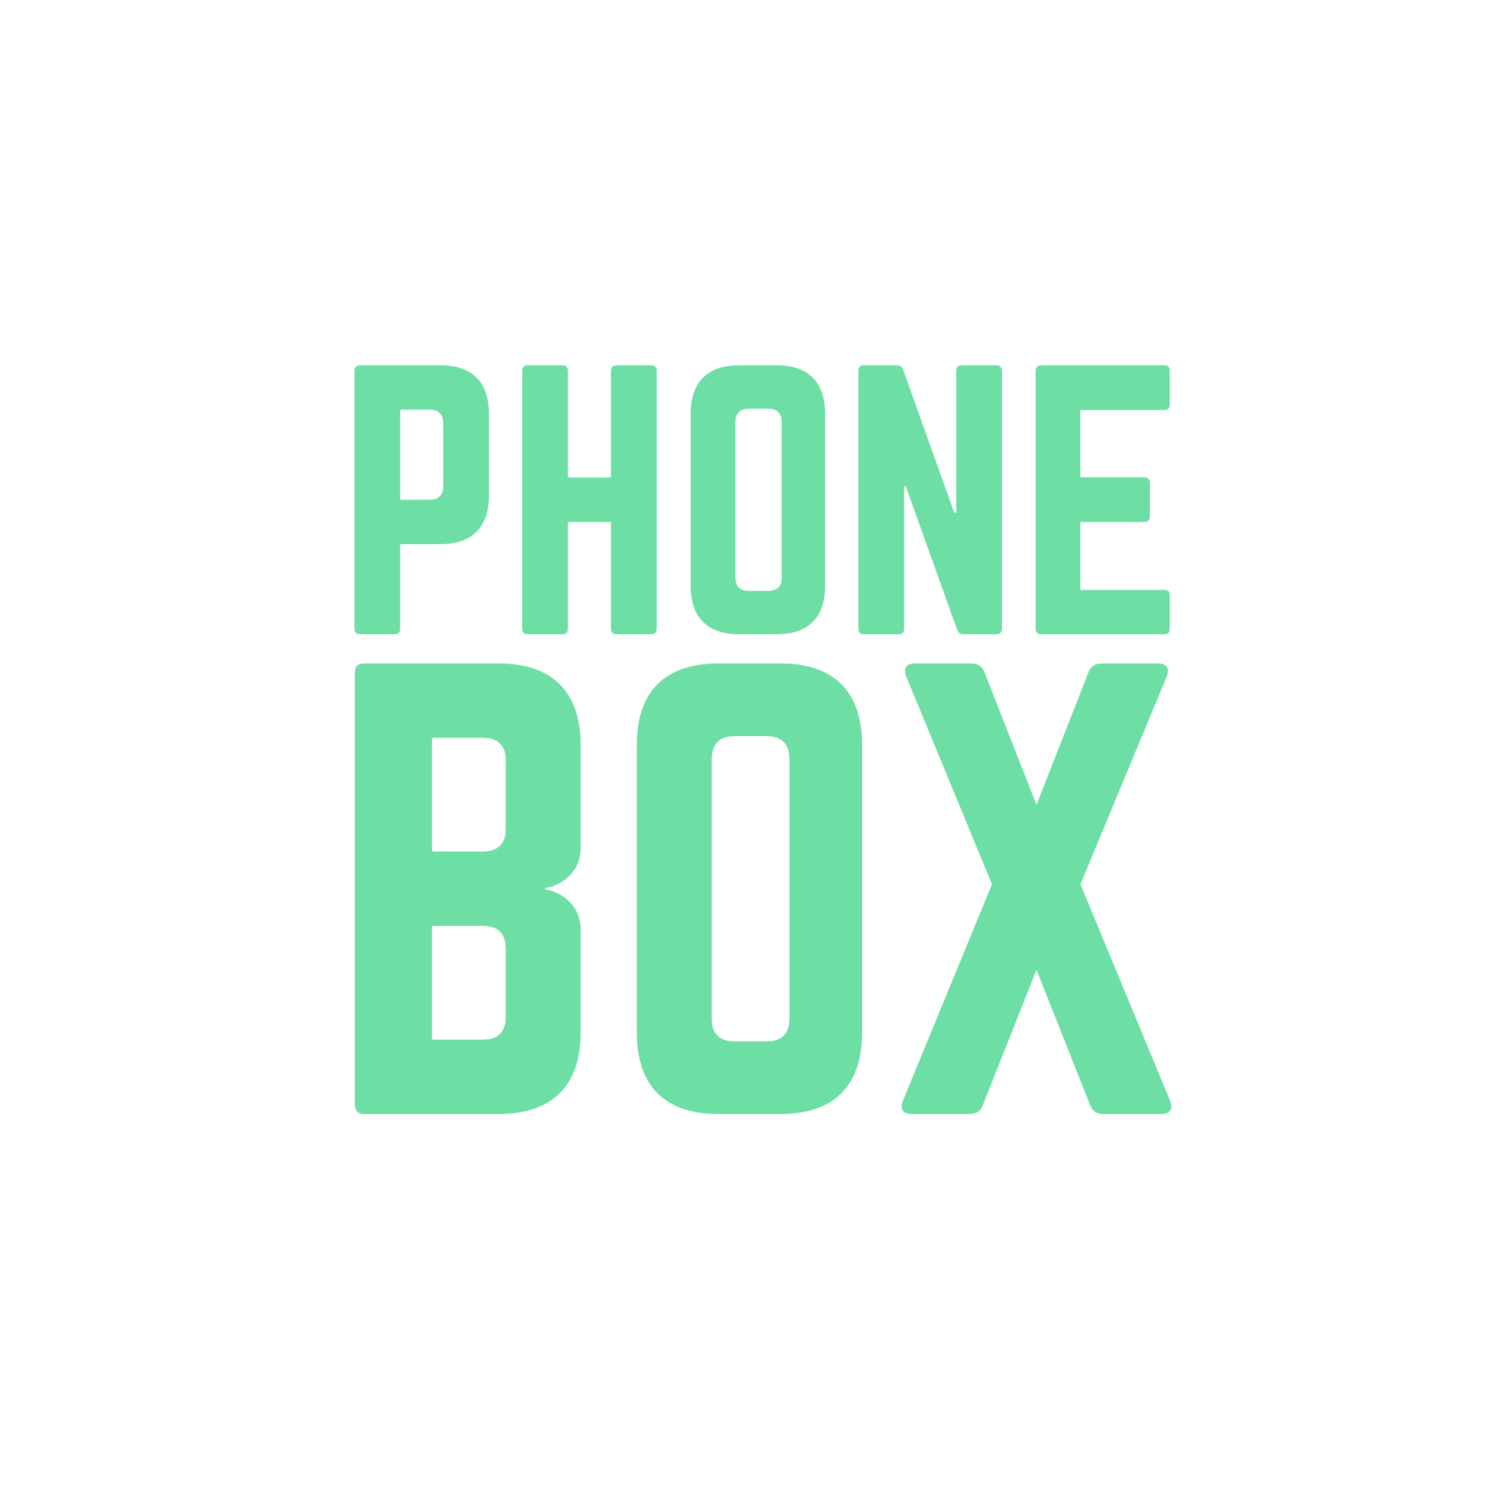 The Phone Box Movement